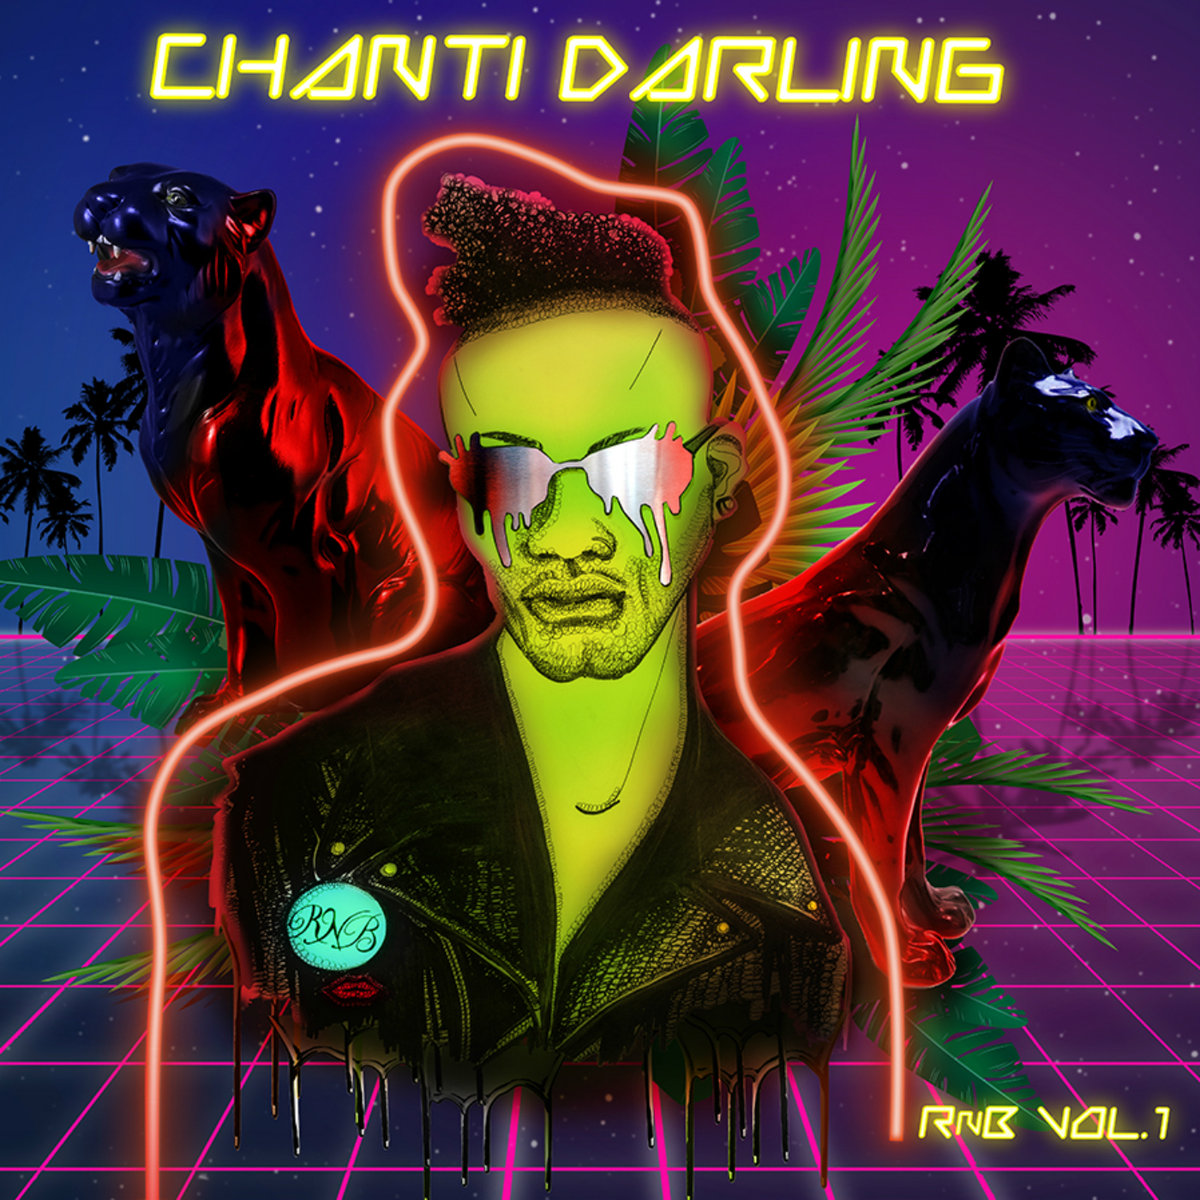 Chanti Darling - RNB Vol.1 album cover.jpg